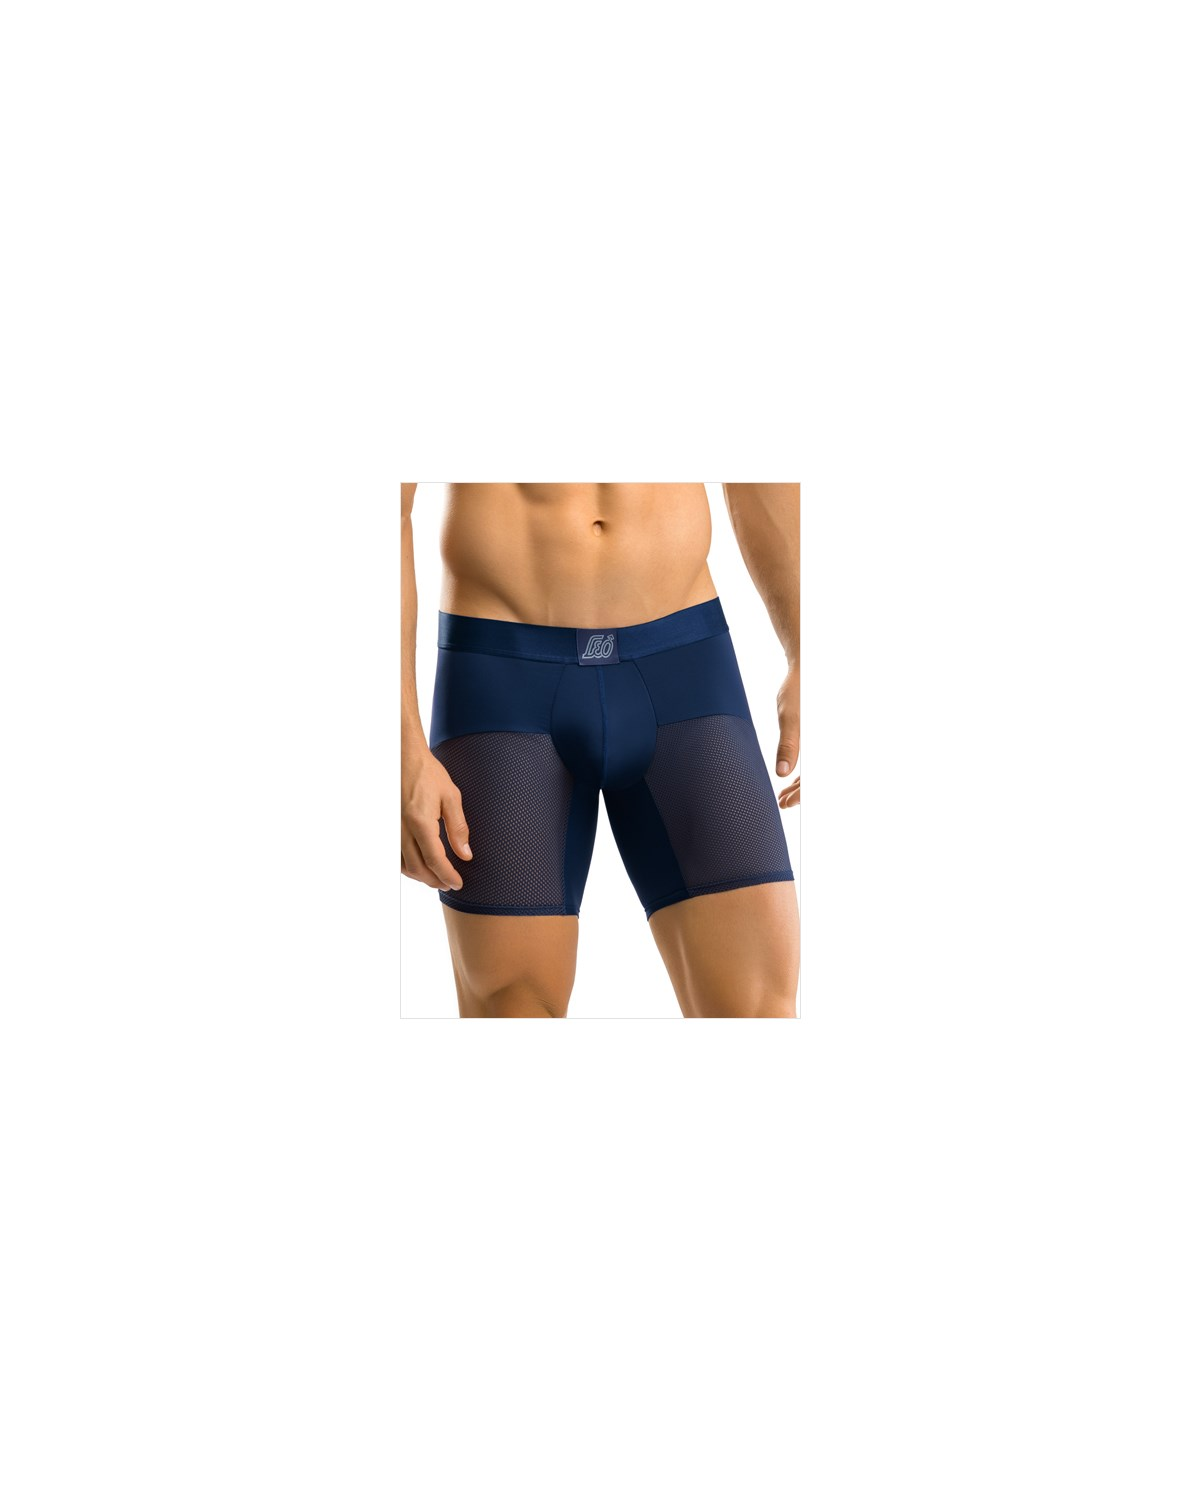 leo advanced mesh long boxer brief-509- Dark Blue-MainImage